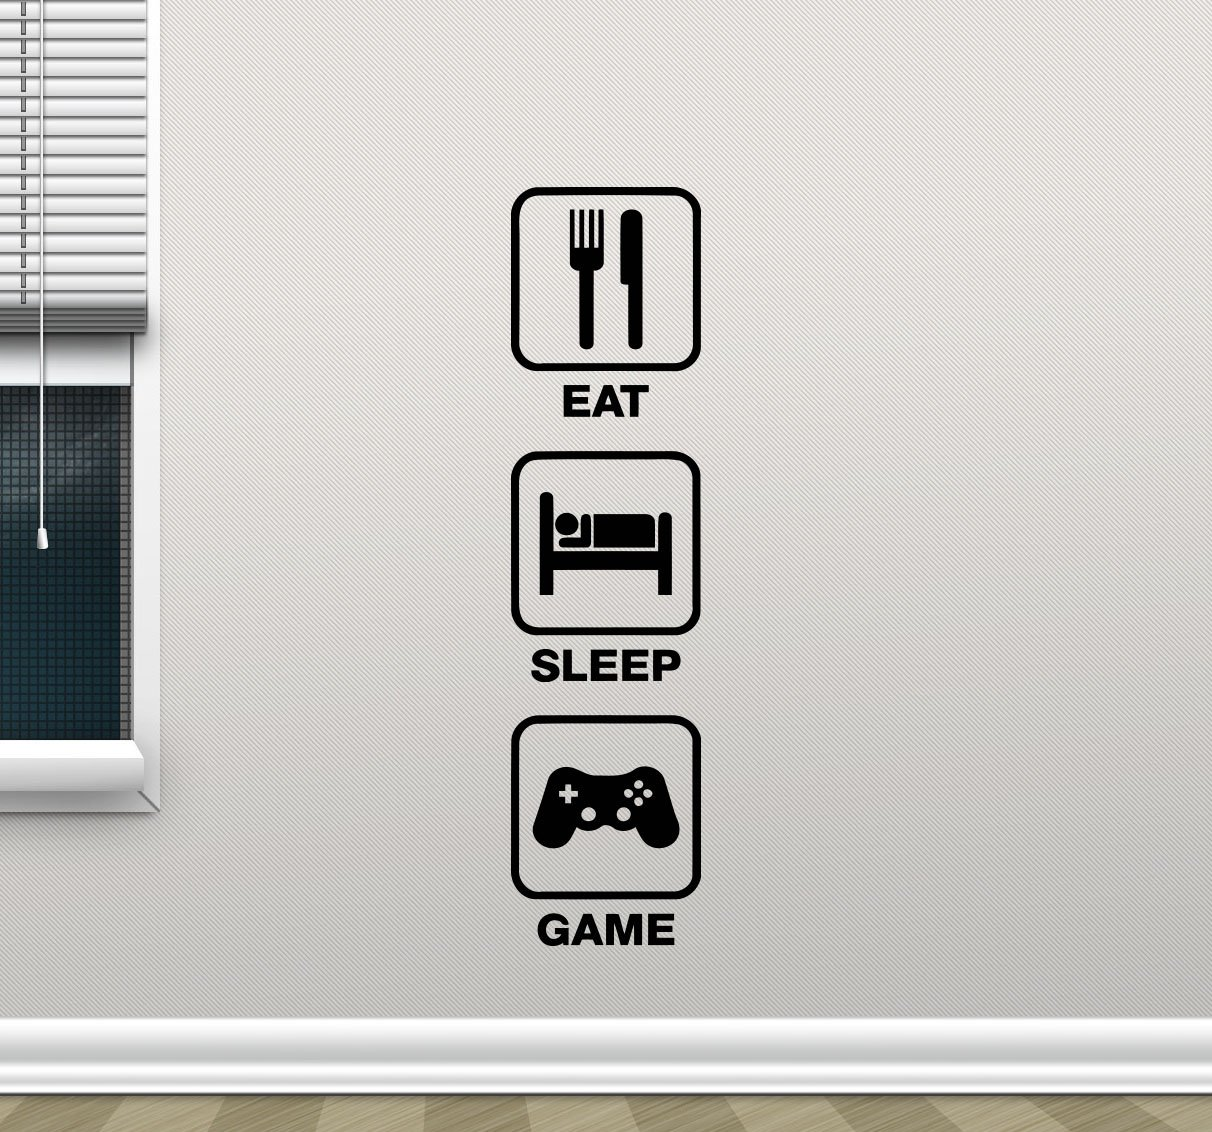 Eat Sleep Game Gaming Quote Wall Decal Video Game Gamepads Playroom Vinyl Sticker Gamer Xbox PS PC Home School College Office Kids Living Room Decor Nursery Wall Art Design Bedroom Mural 92bar by CarolGreyDecals (Image #1)